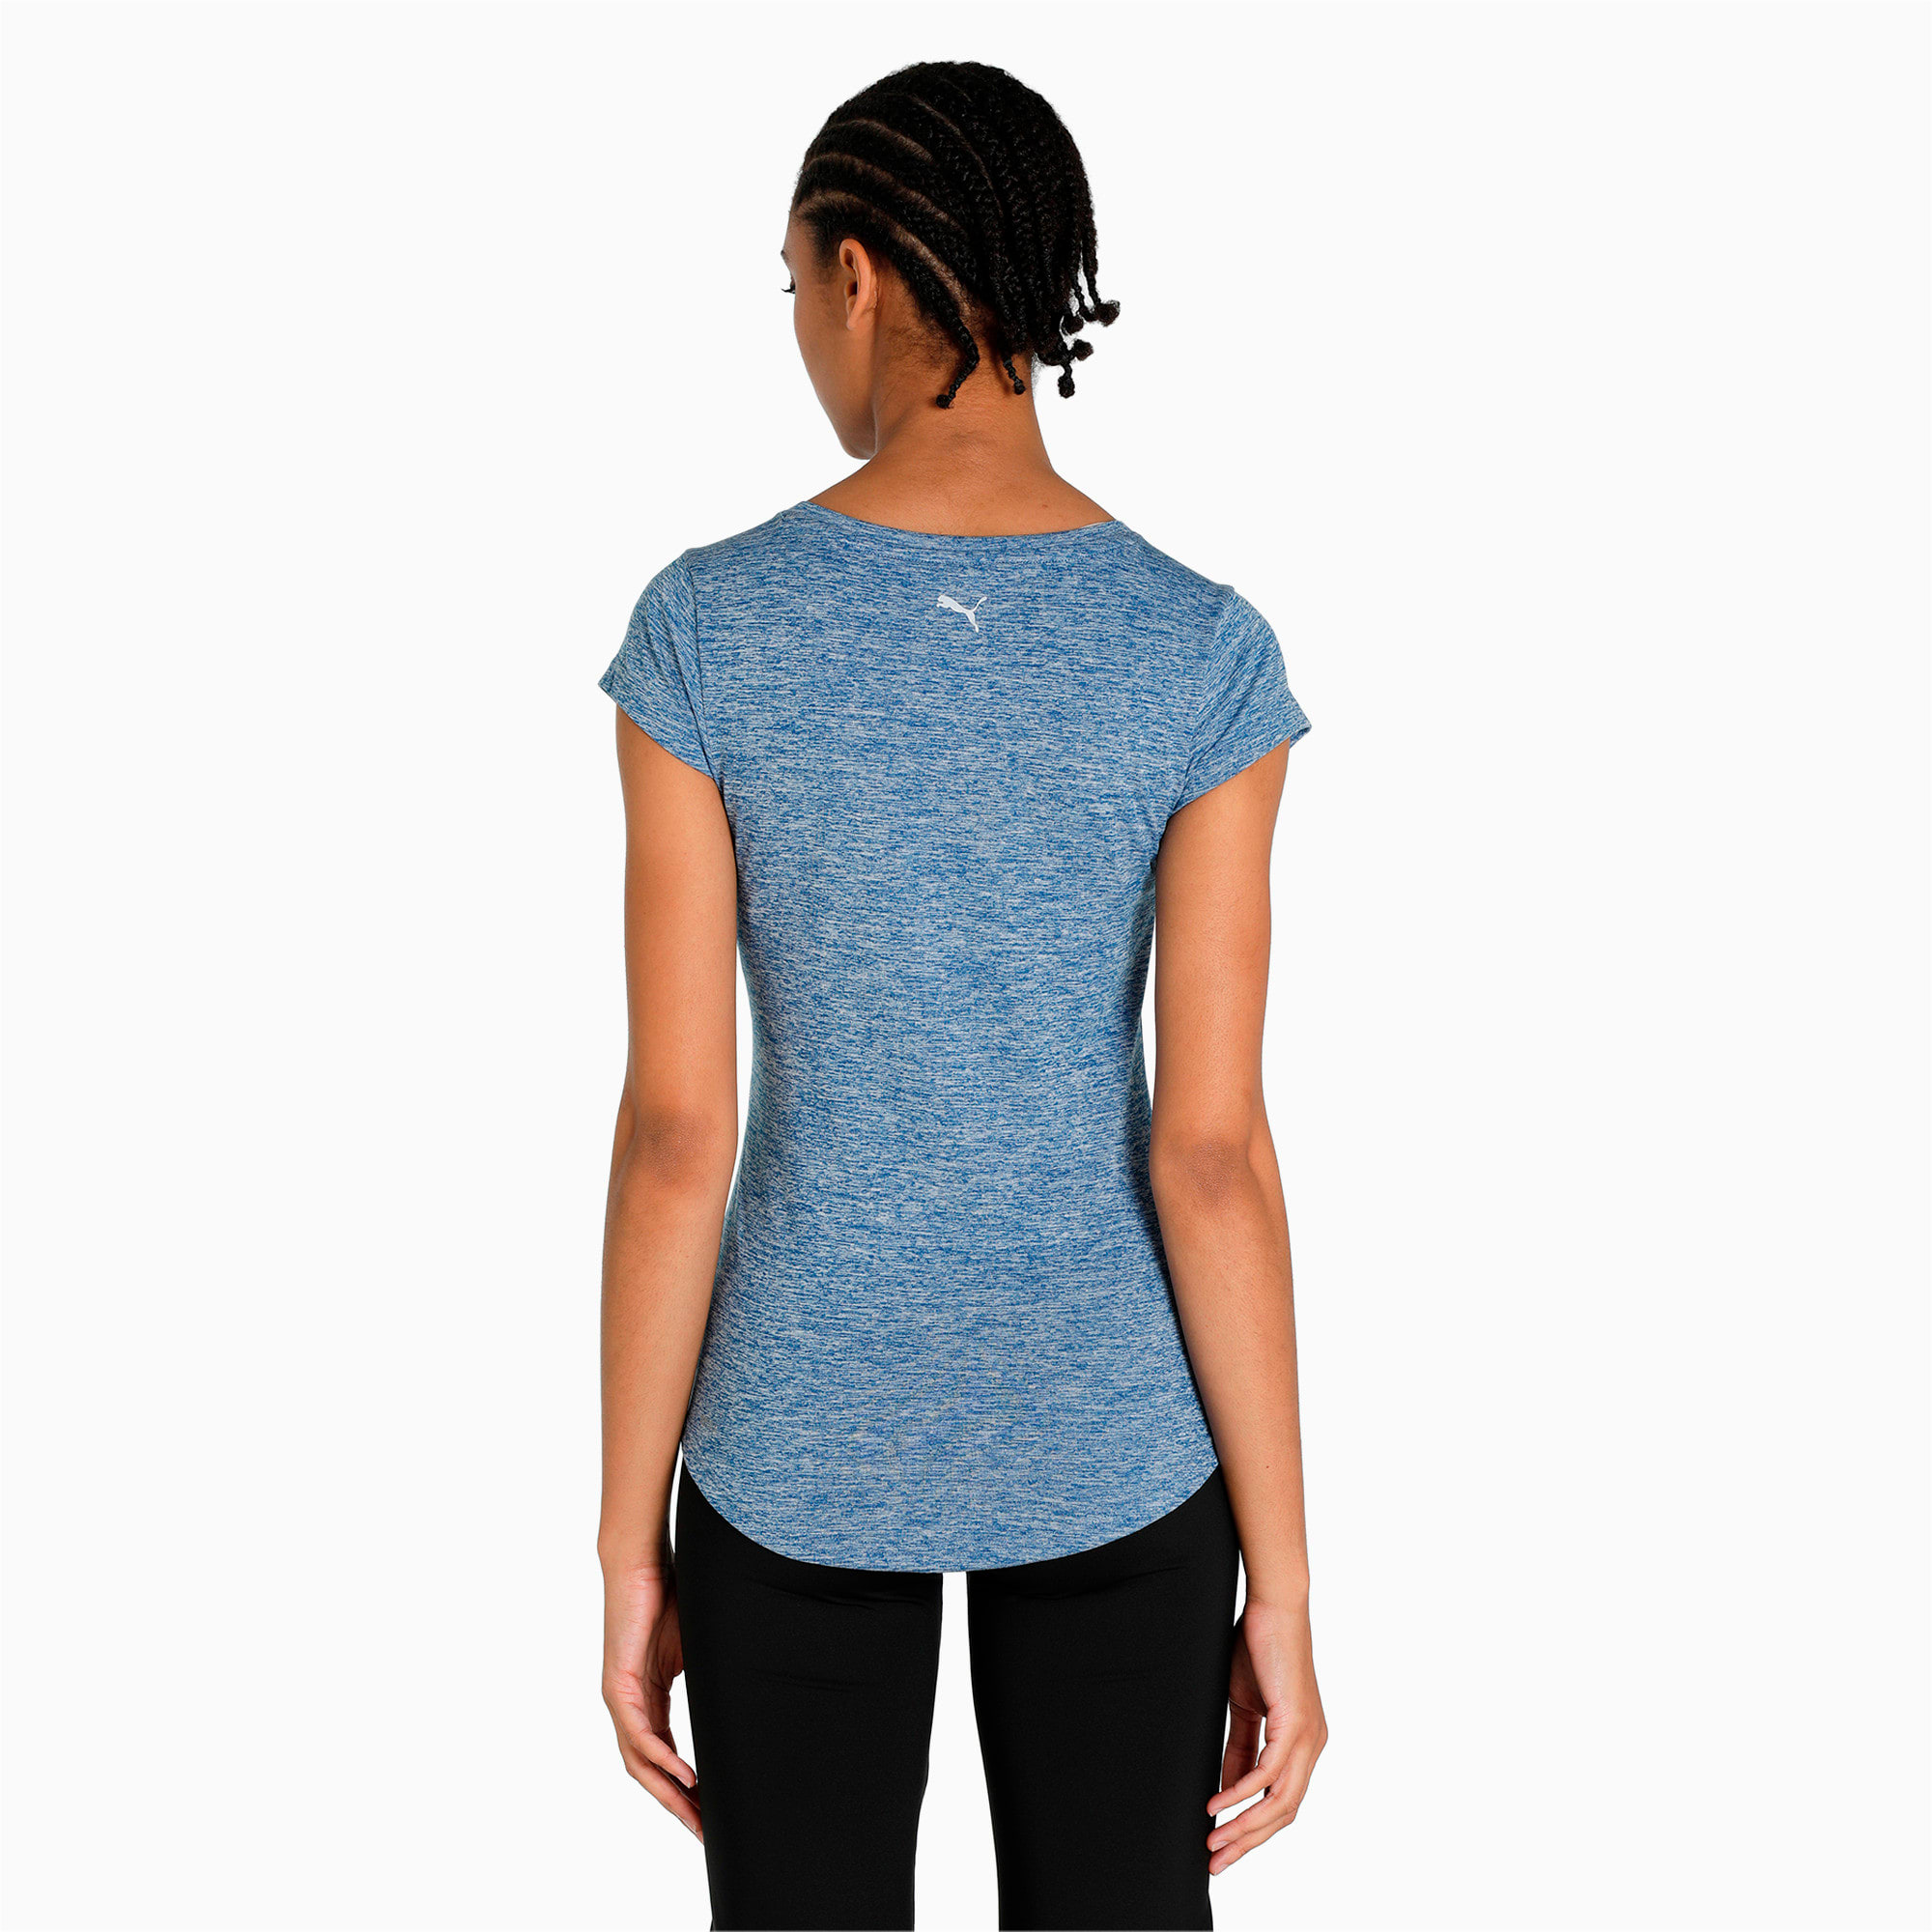 Thumbnail 5 of Active Training Women's Heather Cat T-Shirt, TRUE BLUE Heather, medium-IND